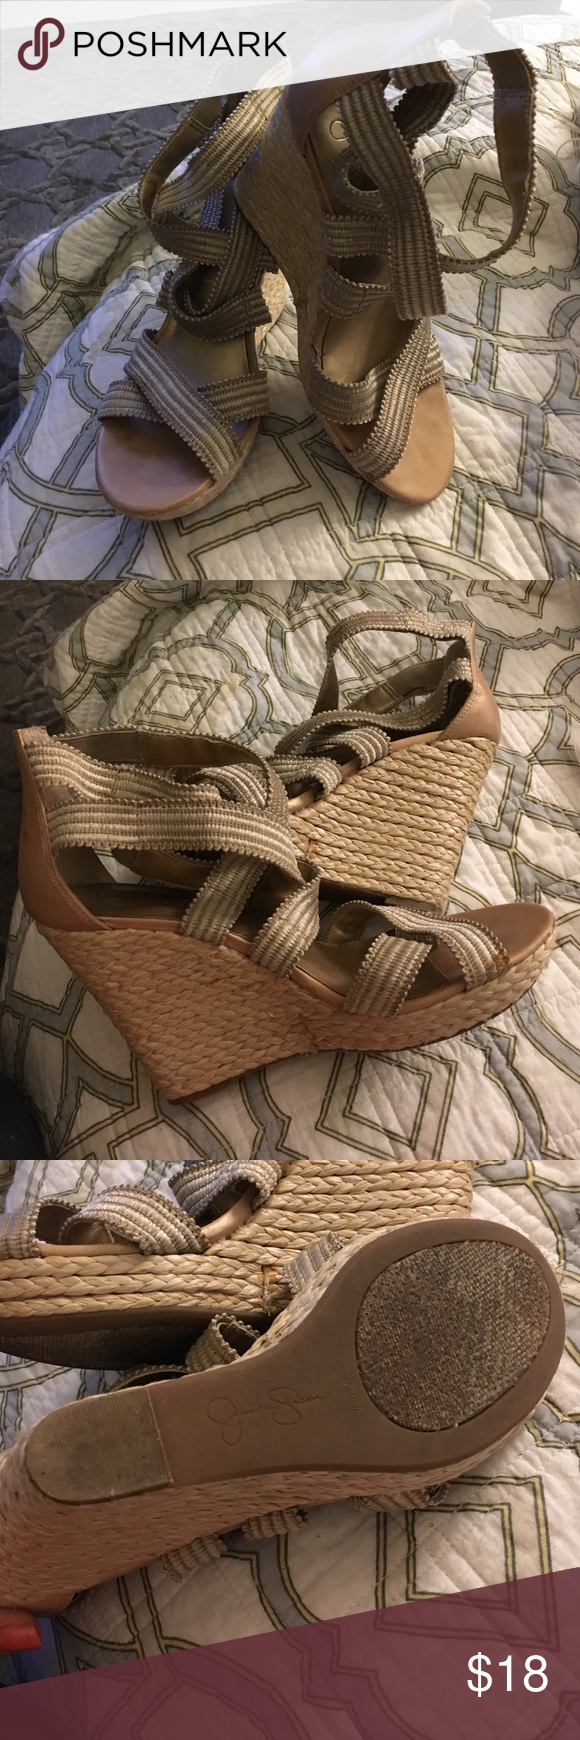 Jessica Simpson wedges w/ metallic back&rope wedge Super adorable Jessica Simpson wedges. Shoes have elastic straps with a threaded upper and metallicy backing. Wedge is a woven straw/rope and has a rose gold, metallic back. I believe the size is 8.5, but cannot confirm as there is no size stamp on the shoe. Shoes are in great shape with normal wear and tear. PS: They are fantastic for the summer! Jessica Simpson Shoes Wedges